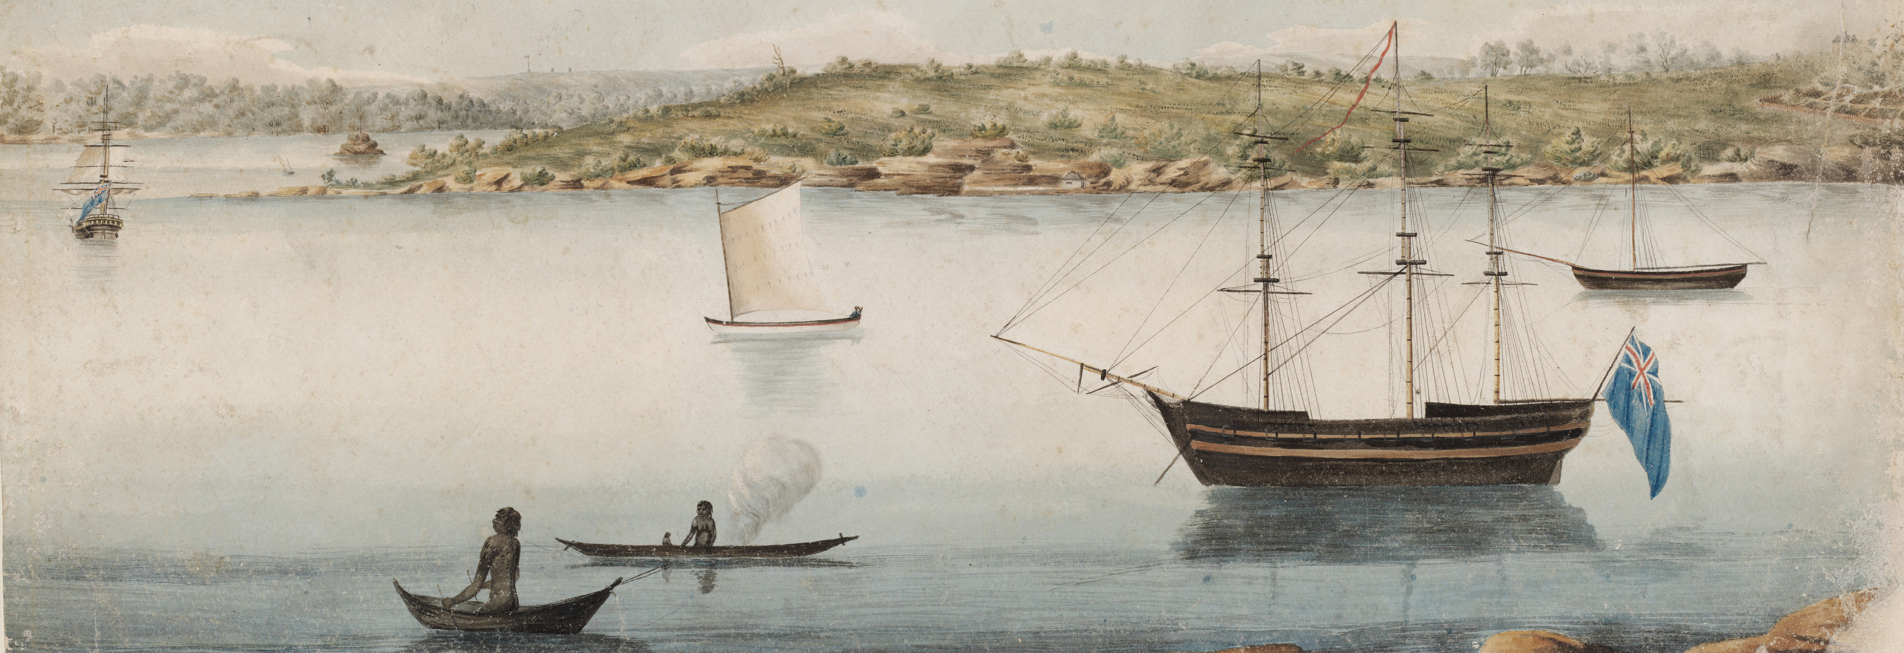 Boats on harbour with Aboriginal people in canoes.